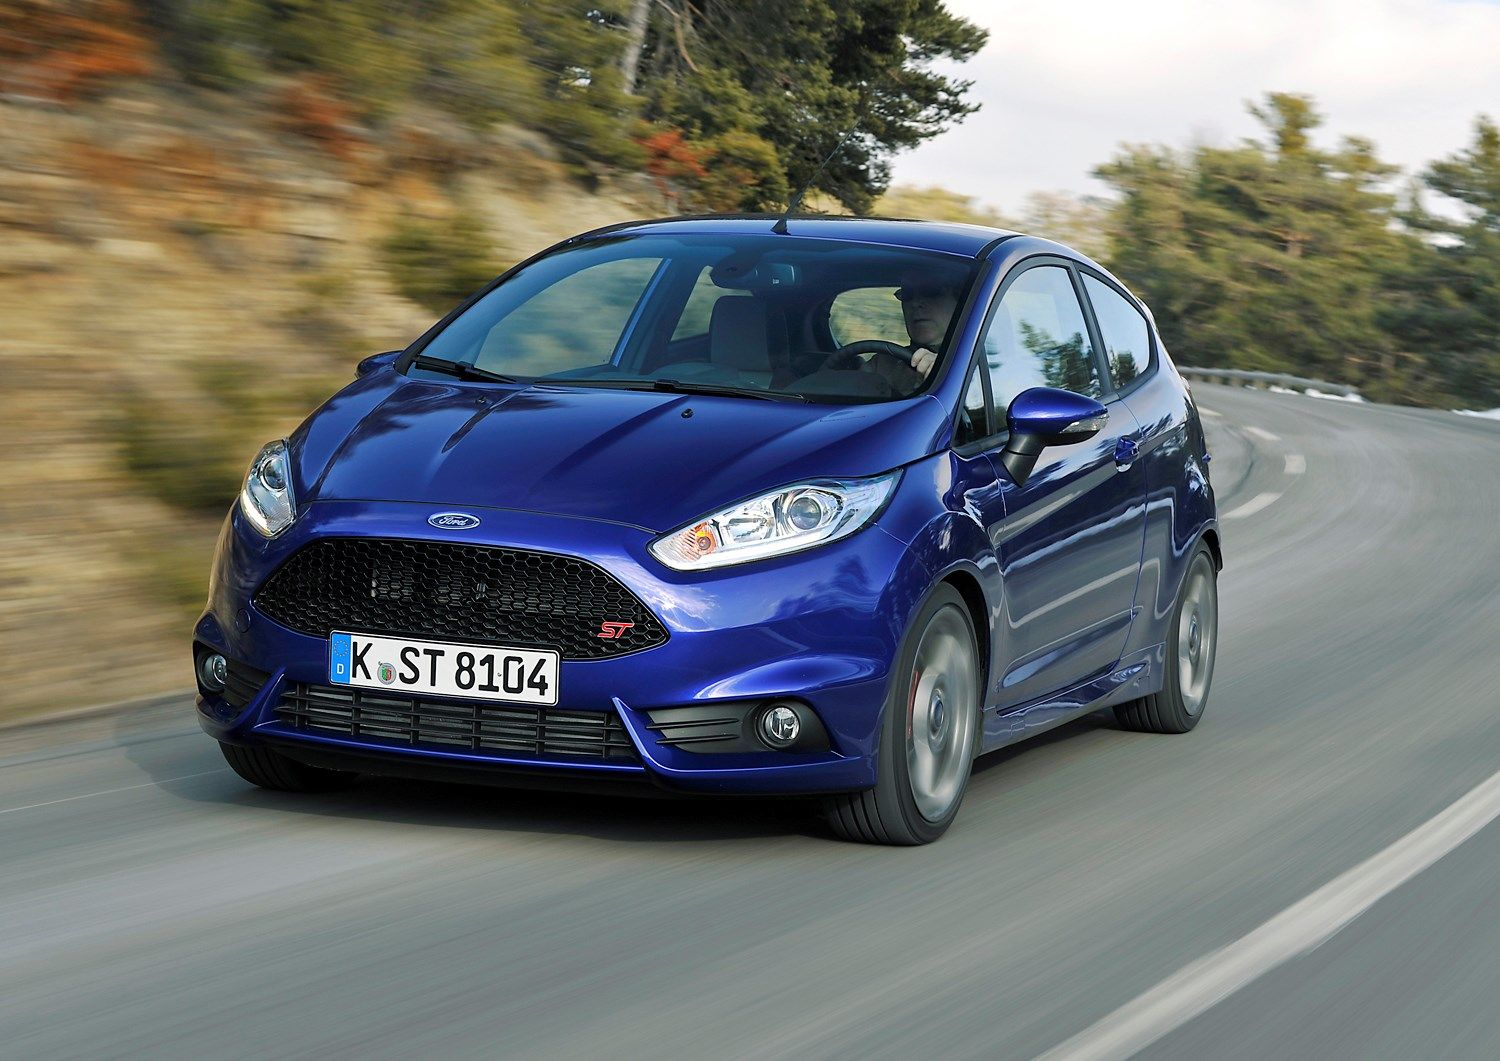 Fast Fun And Affordable The Ford Fiesta St Proves You Really